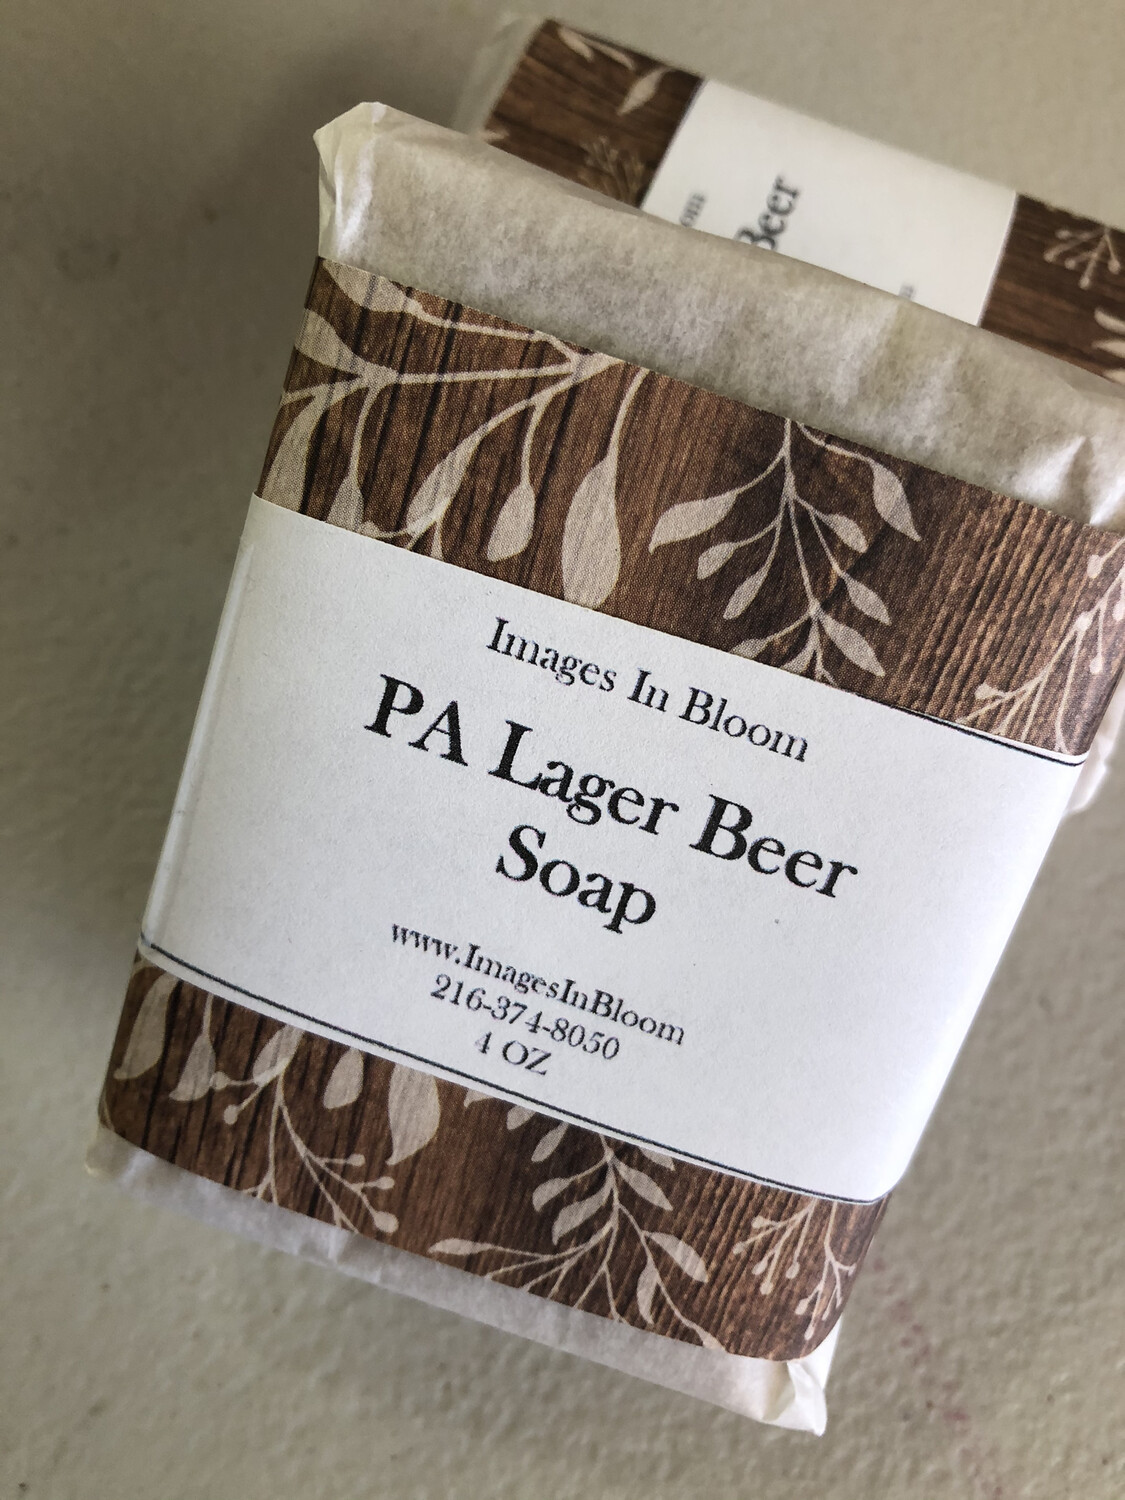 PA Lager Beer Soap